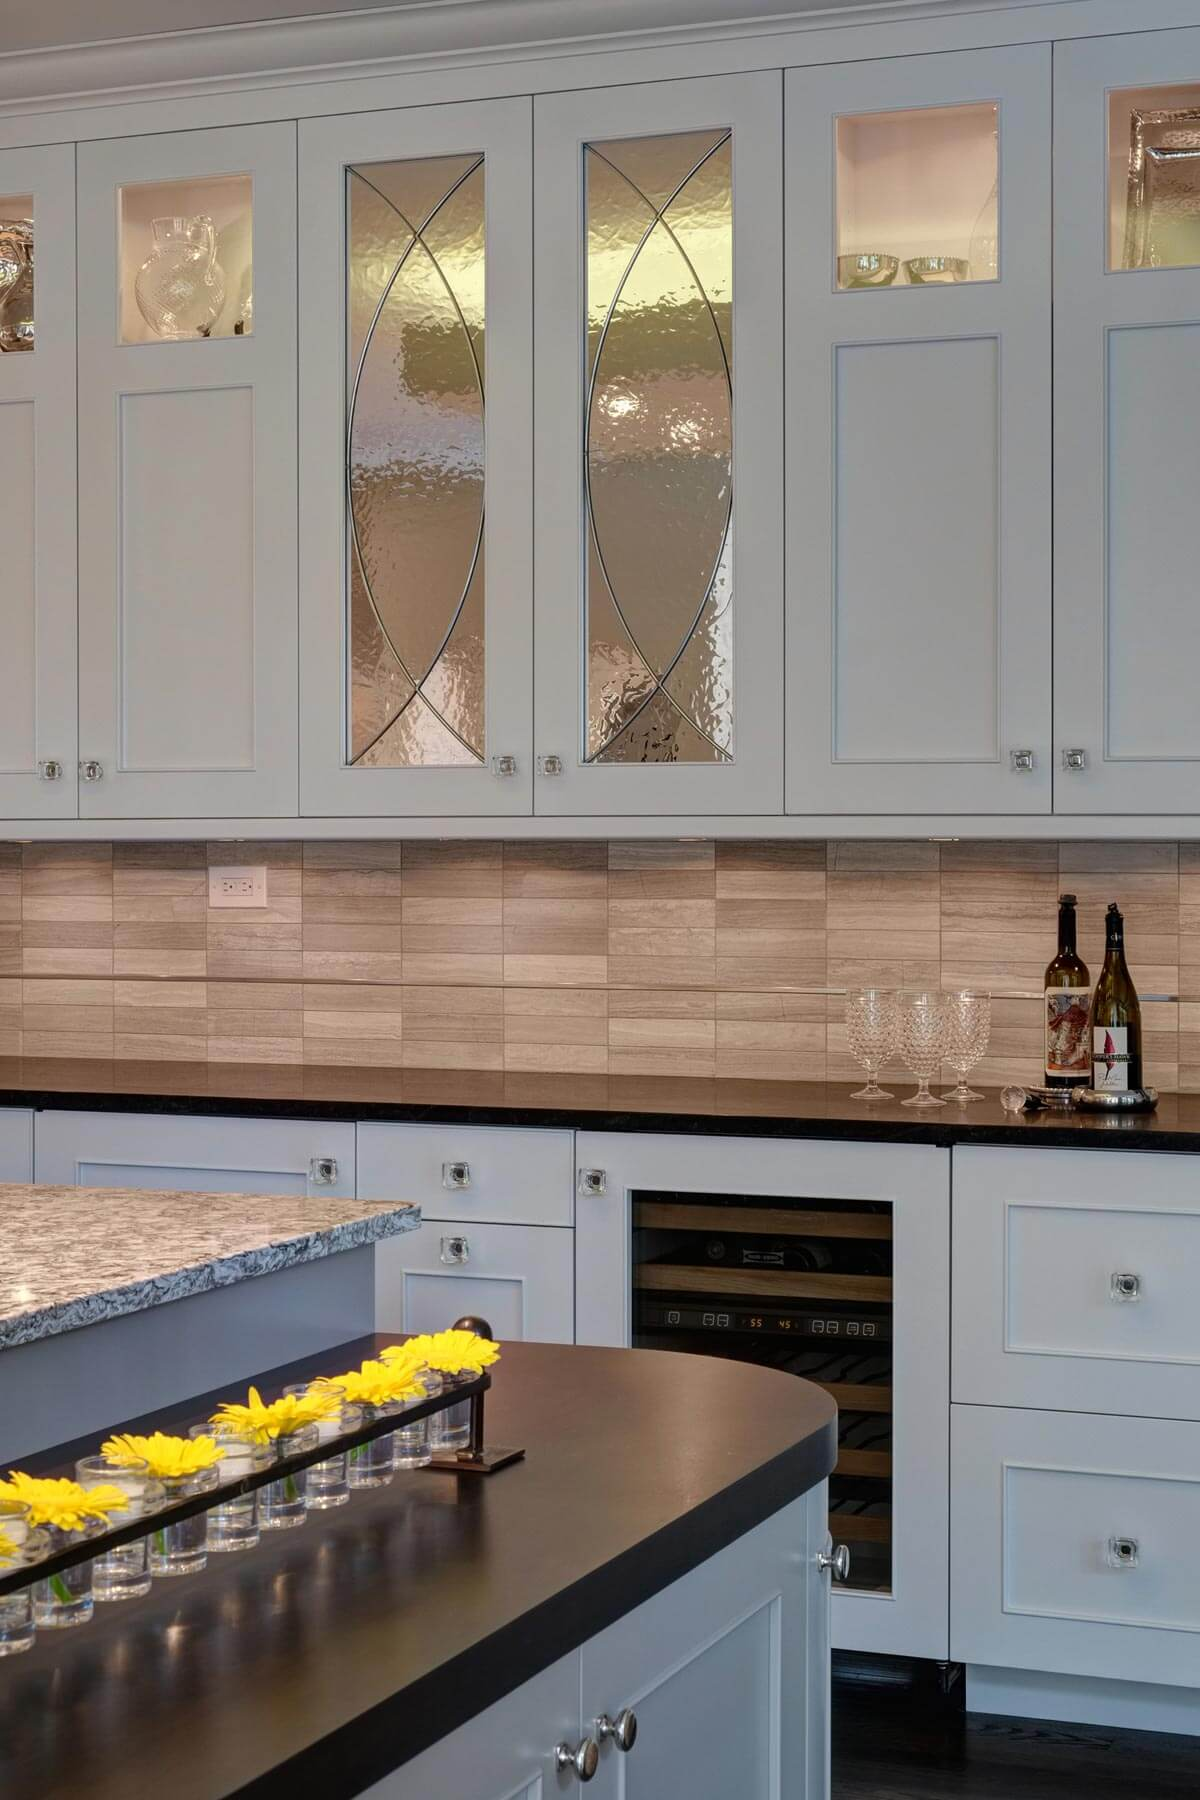 """Lower tier on the """"homework"""" island features matching black granite countertop and rounded edges. Above the countertops we see the stone backsplash with single strip detail."""